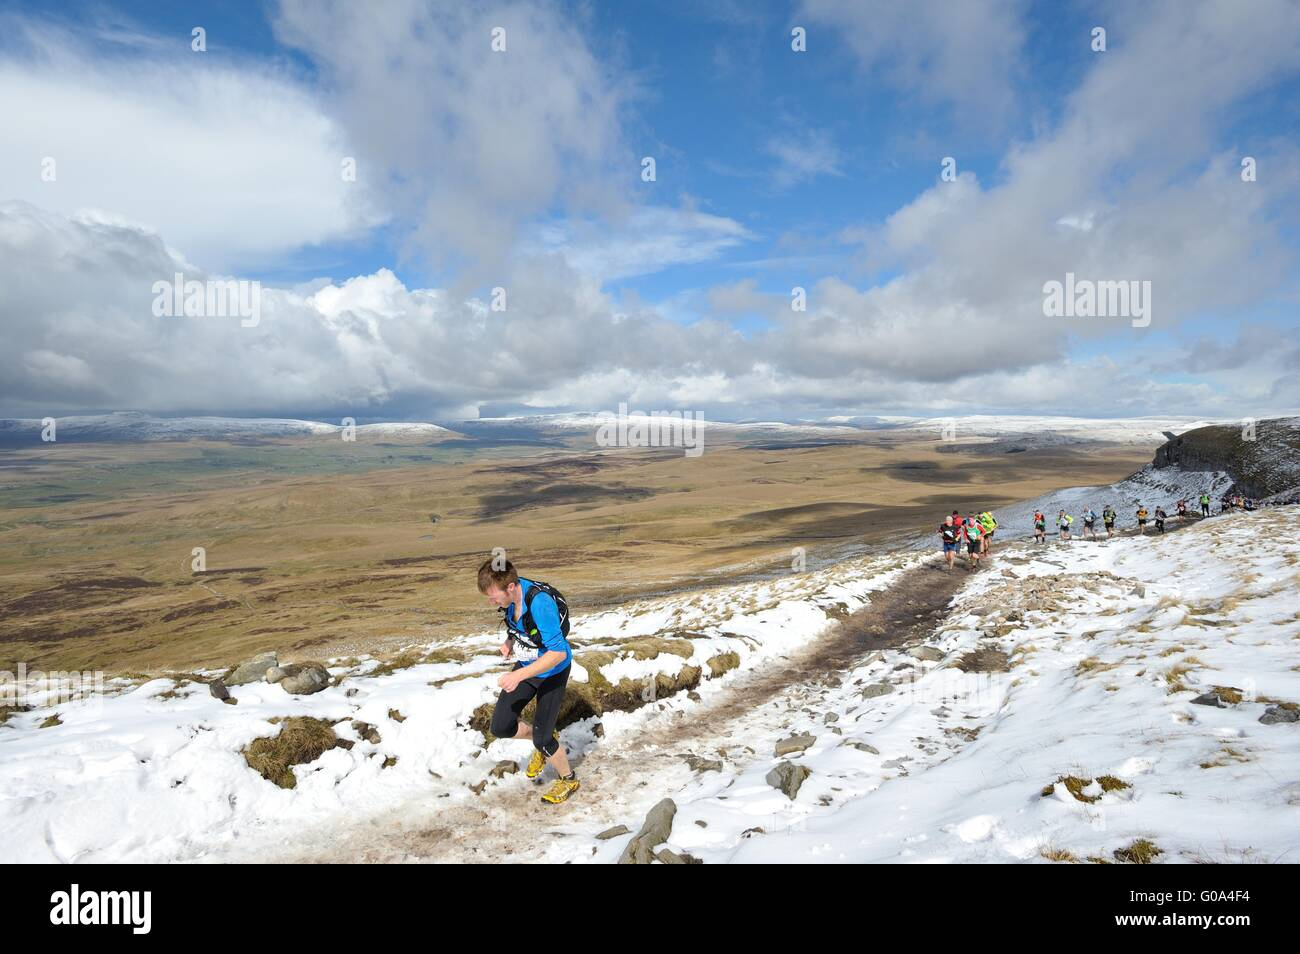 Runners taking part in the three peaks fell race in the Yorkshire Dales - Stock Image